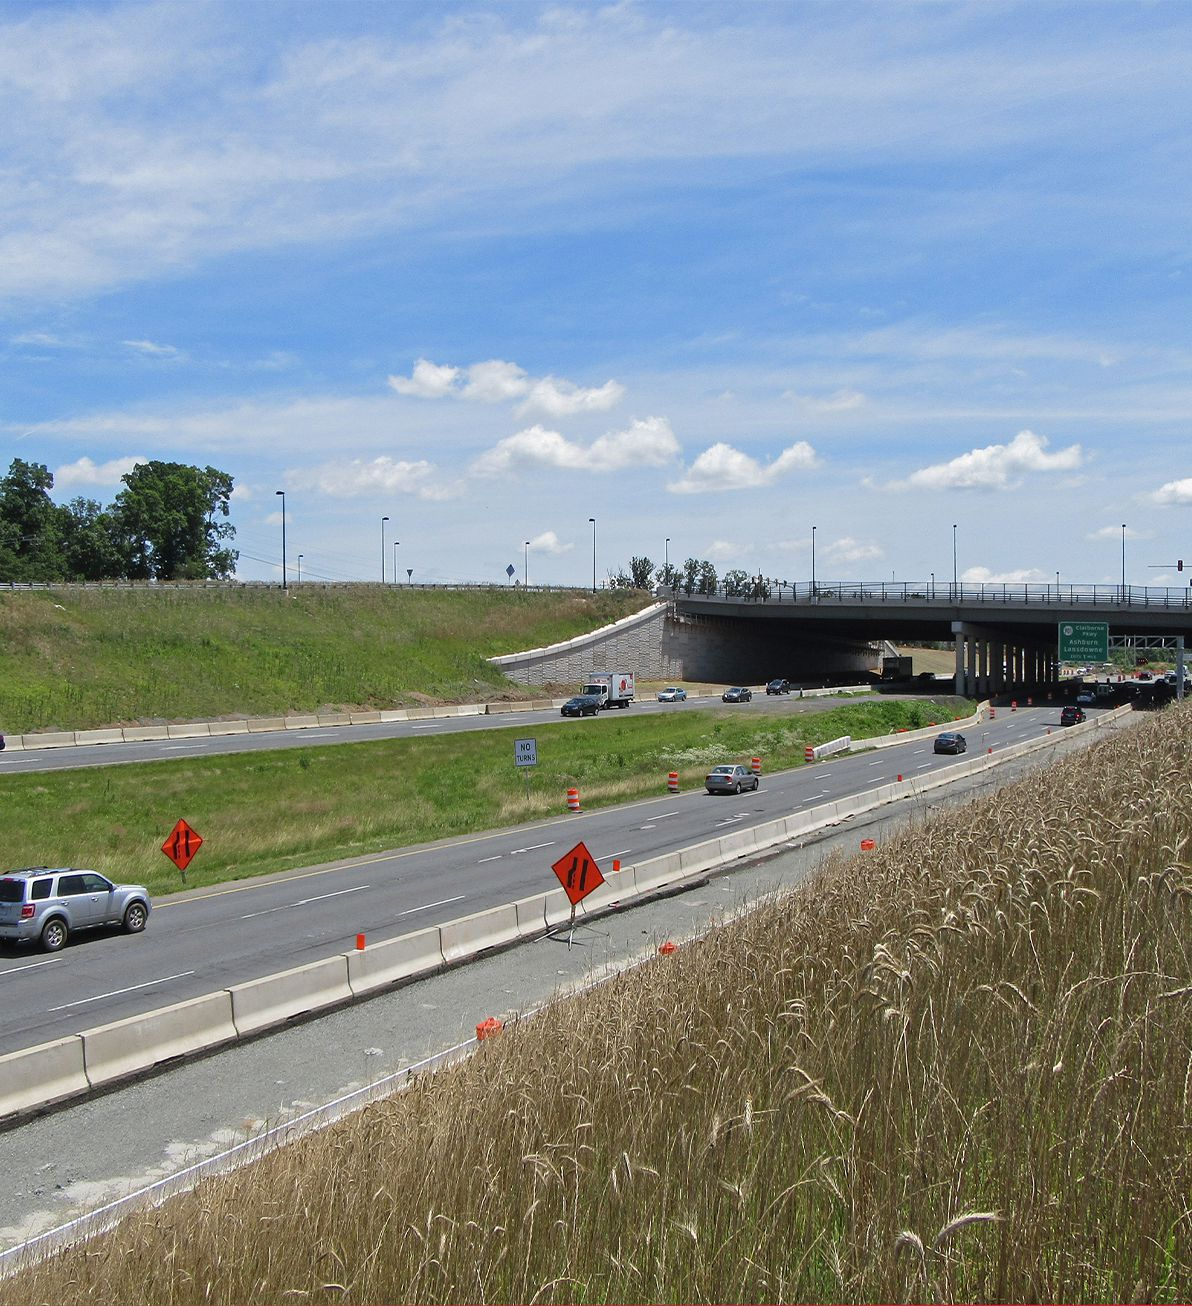 J-J Hooks barriers in use at Route 7 and Belmont Ridge intersection